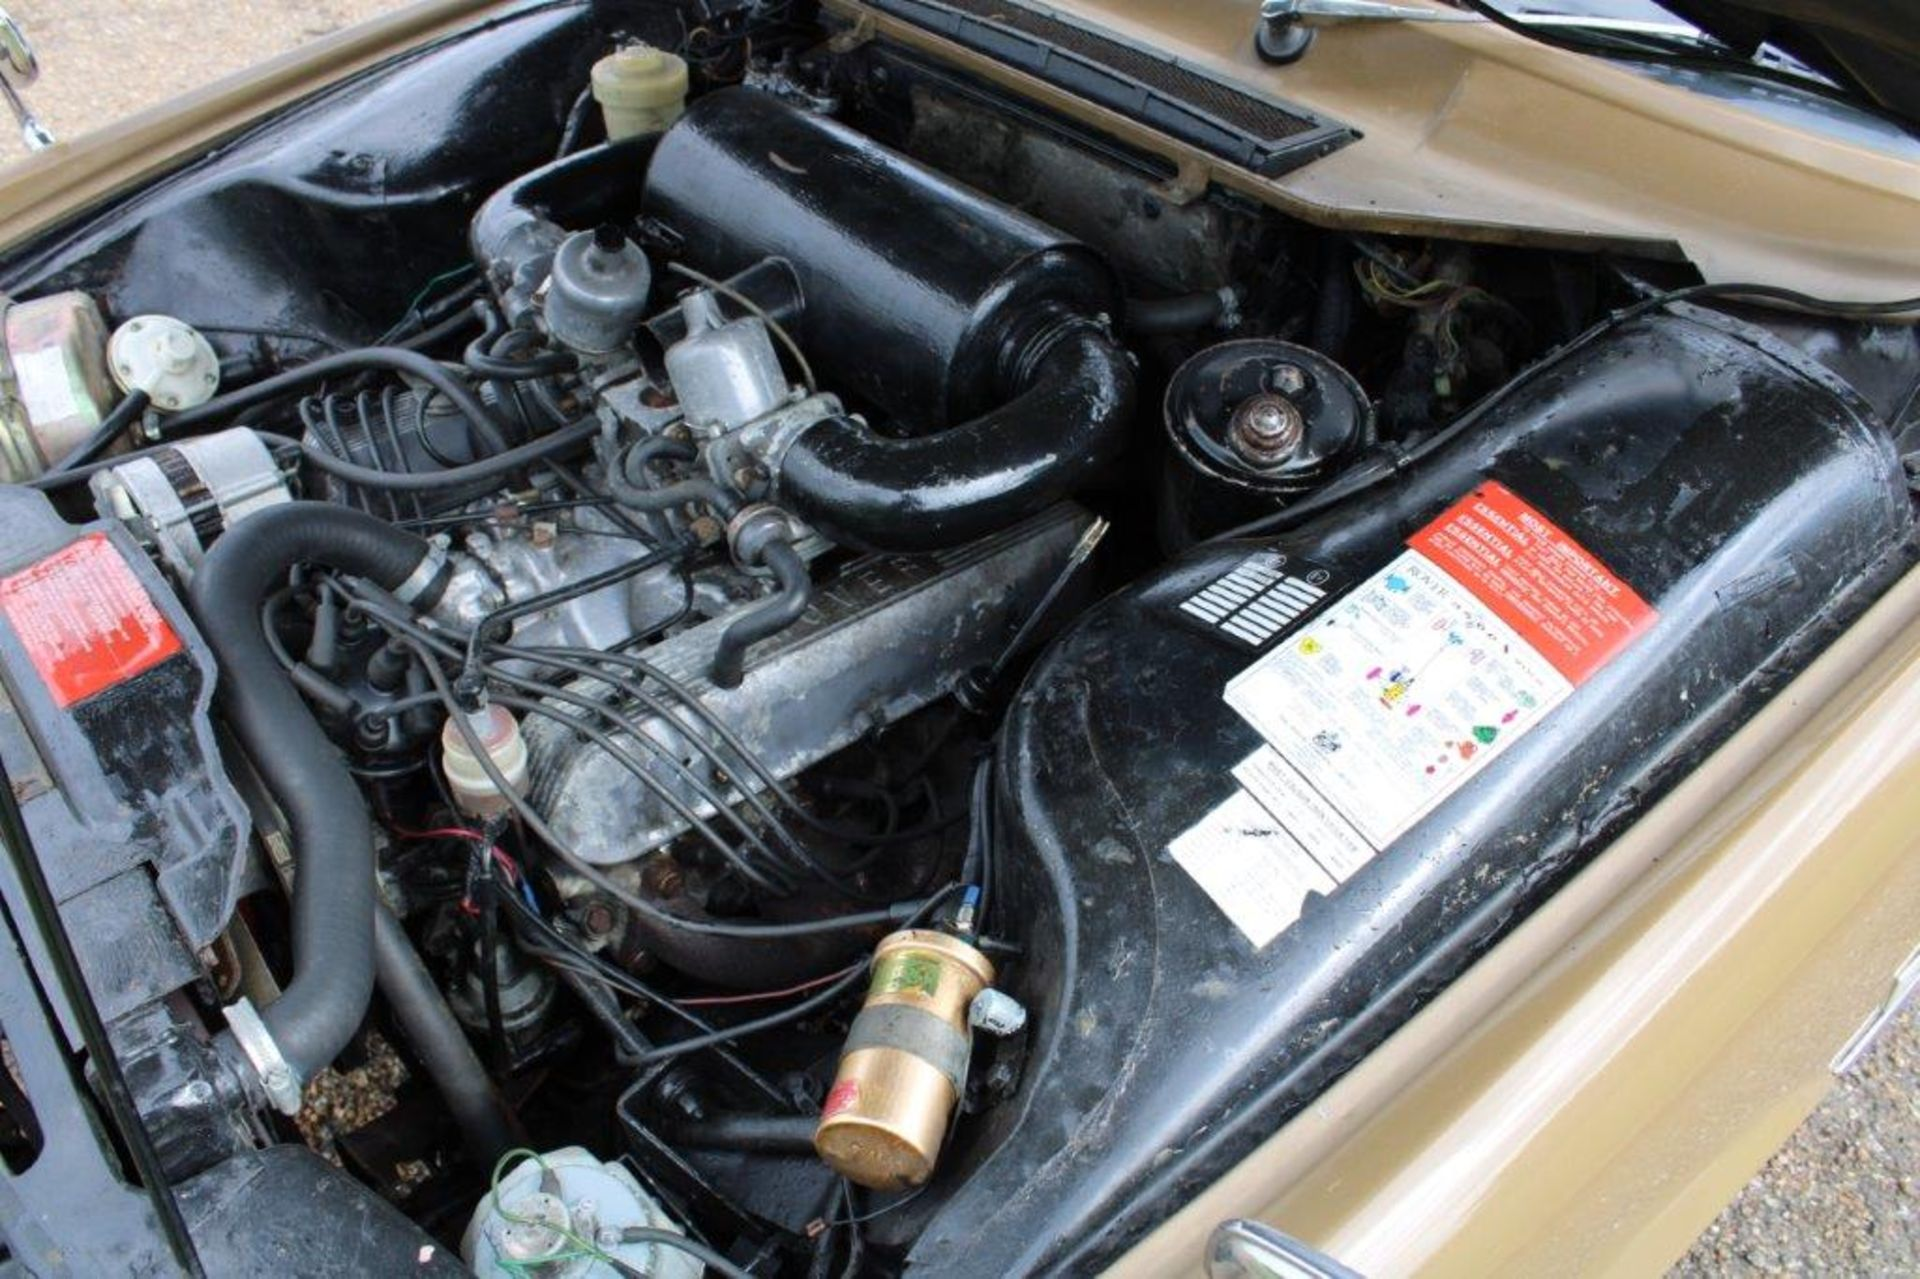 1970 Rover P6 3500 S 1 of 6 development cars - Image 20 of 21